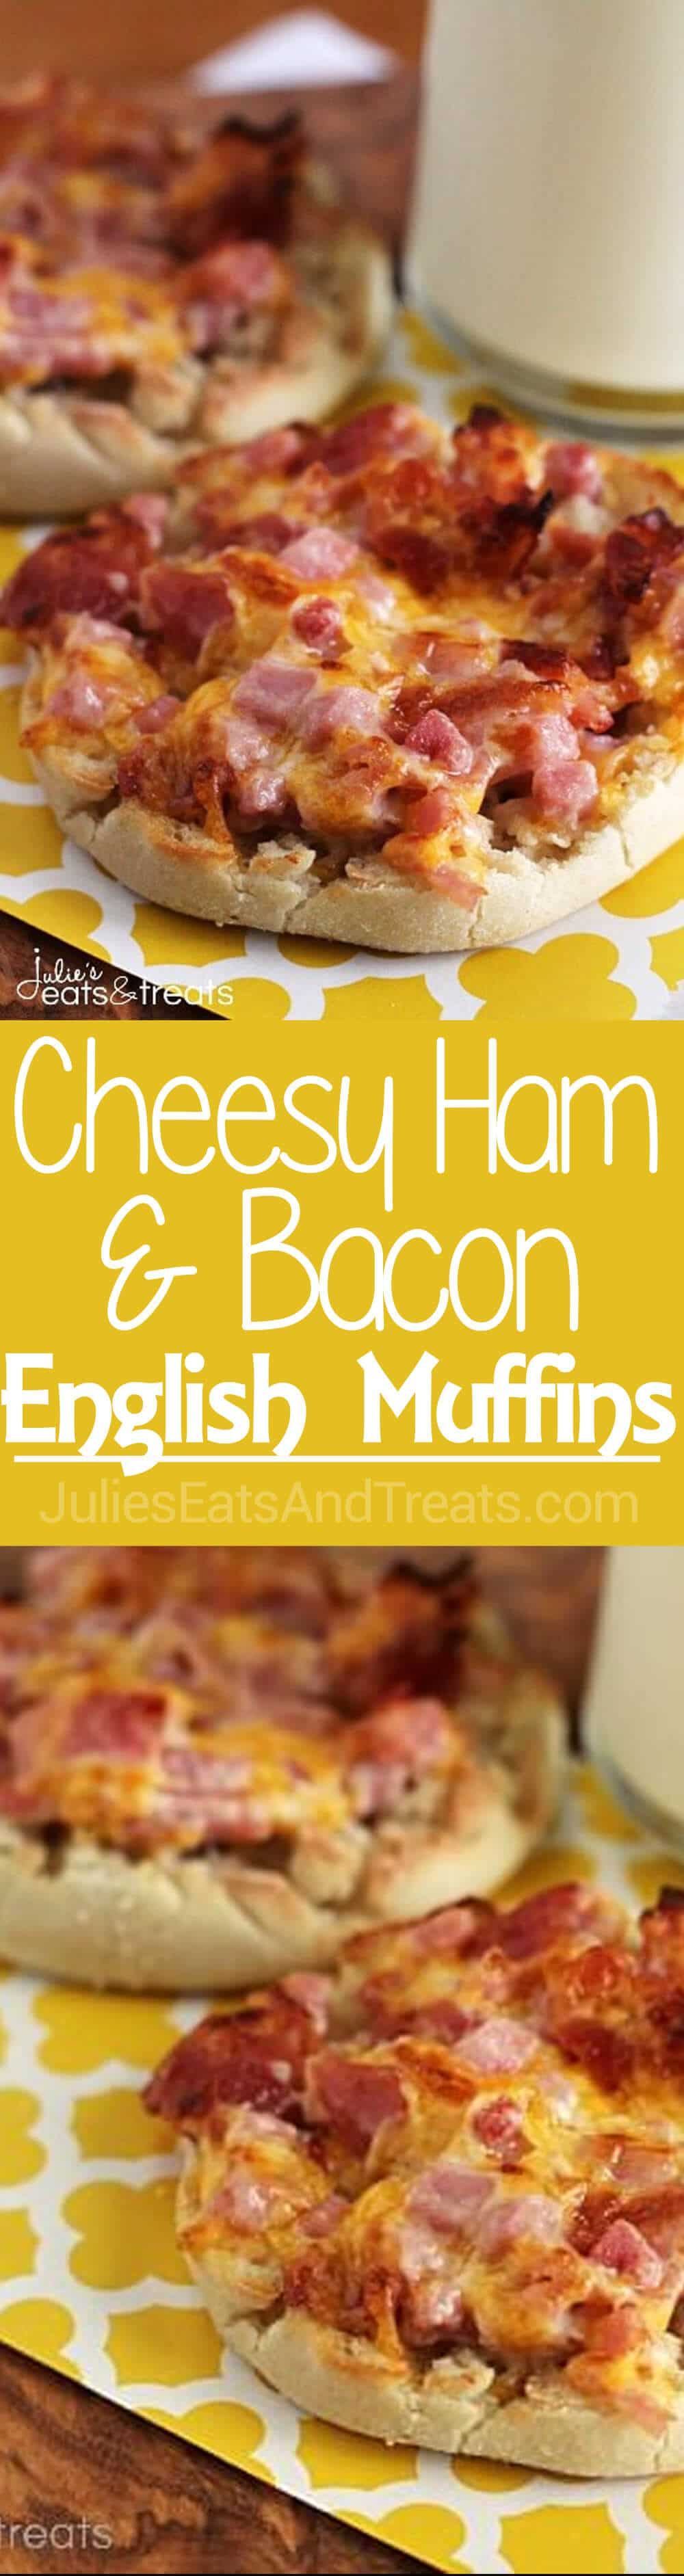 Cheesy Ham & Bacon English Muffins ~ Super Easy Breakfast for Mornings on the Go! English Muffin Loaded with Cheese, Ham & Bacon!